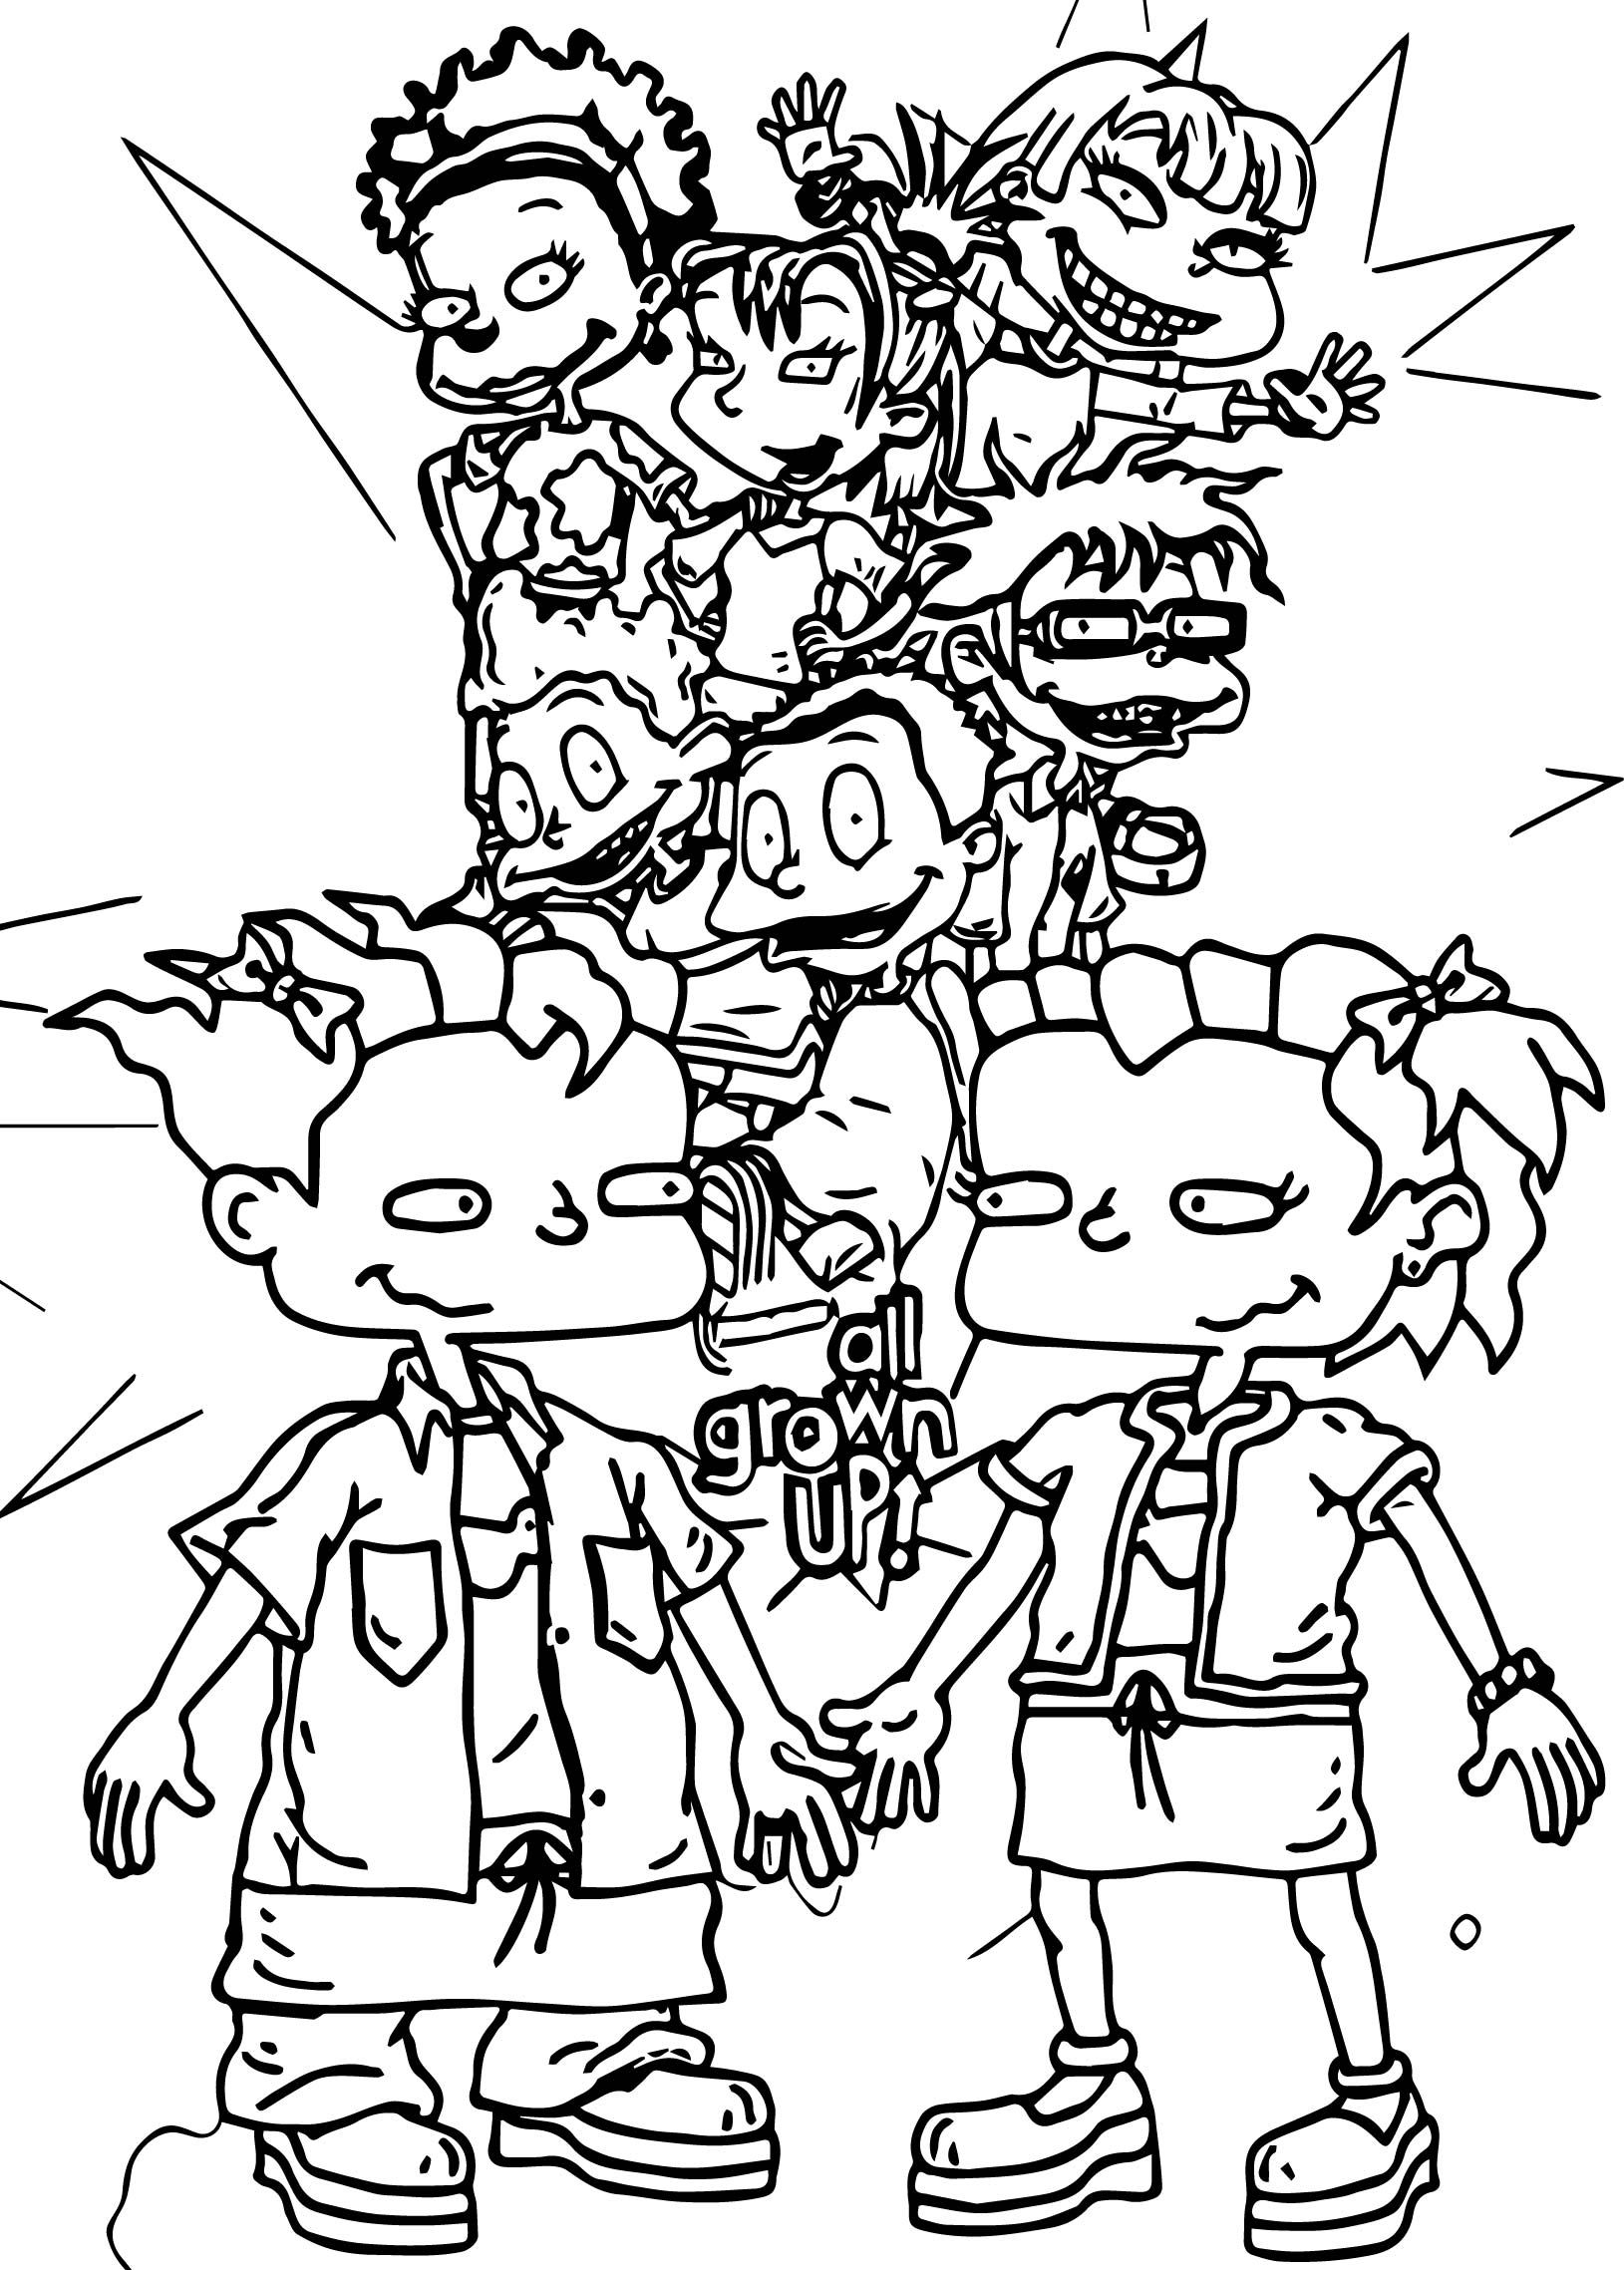 All Grown Up Rugrats Coloring Page | Pinterest | Rugrats, Snail mail ...